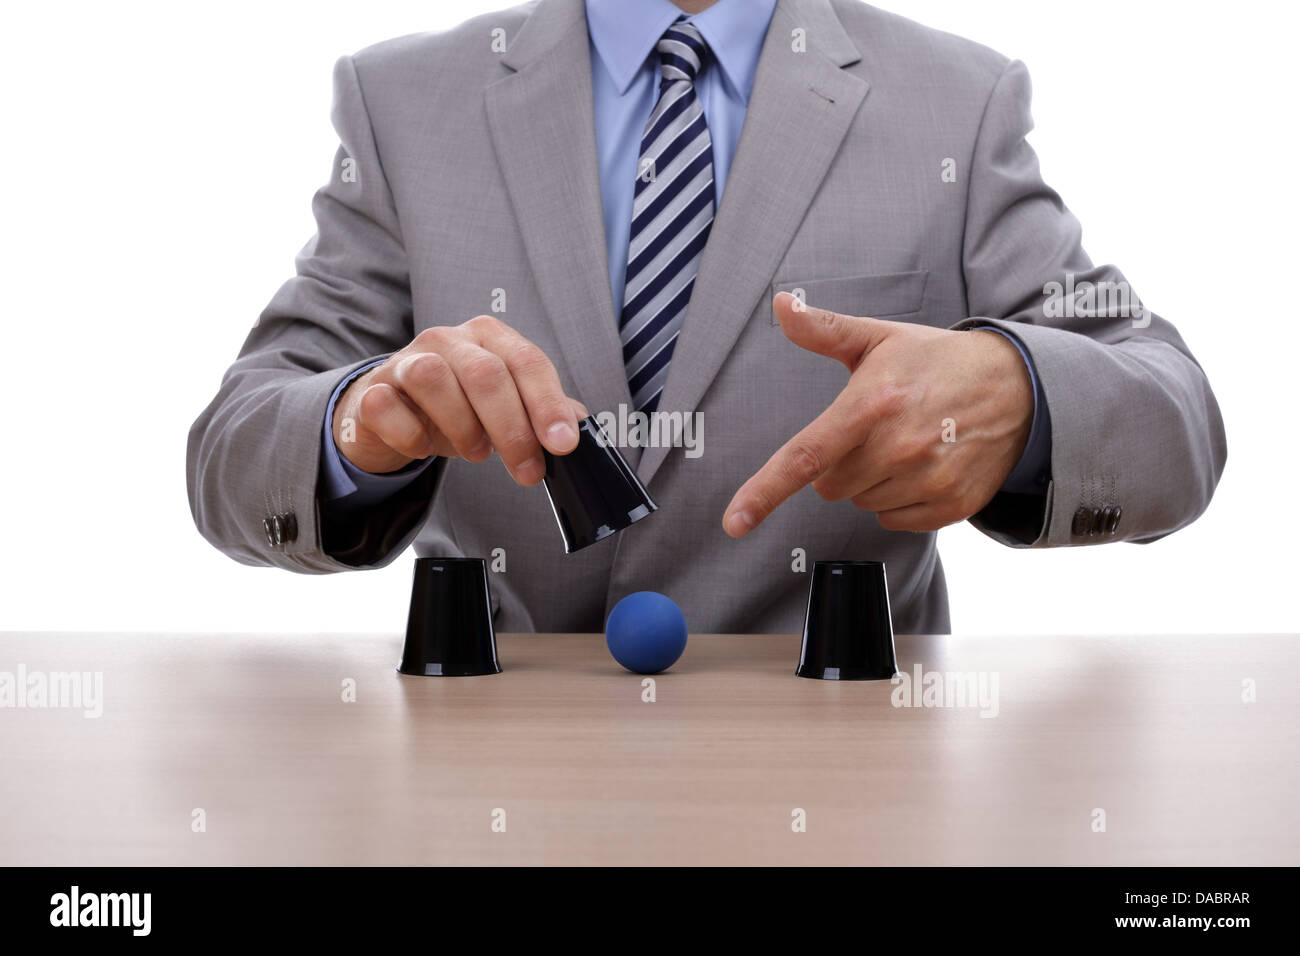 Shell game - Stock Image